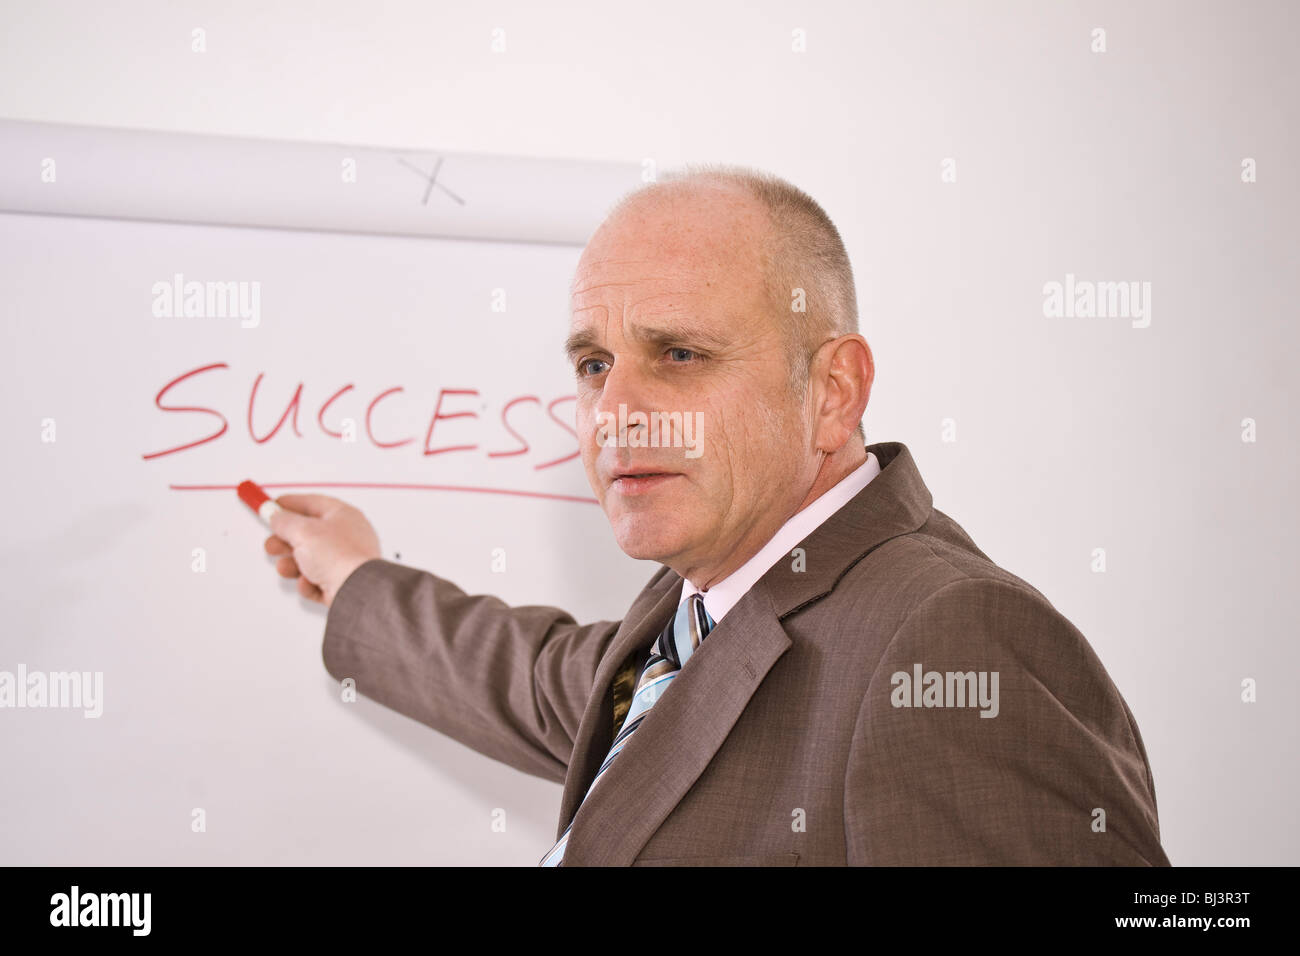 manager standing in front of a flip chart labelled success BJ3R3T